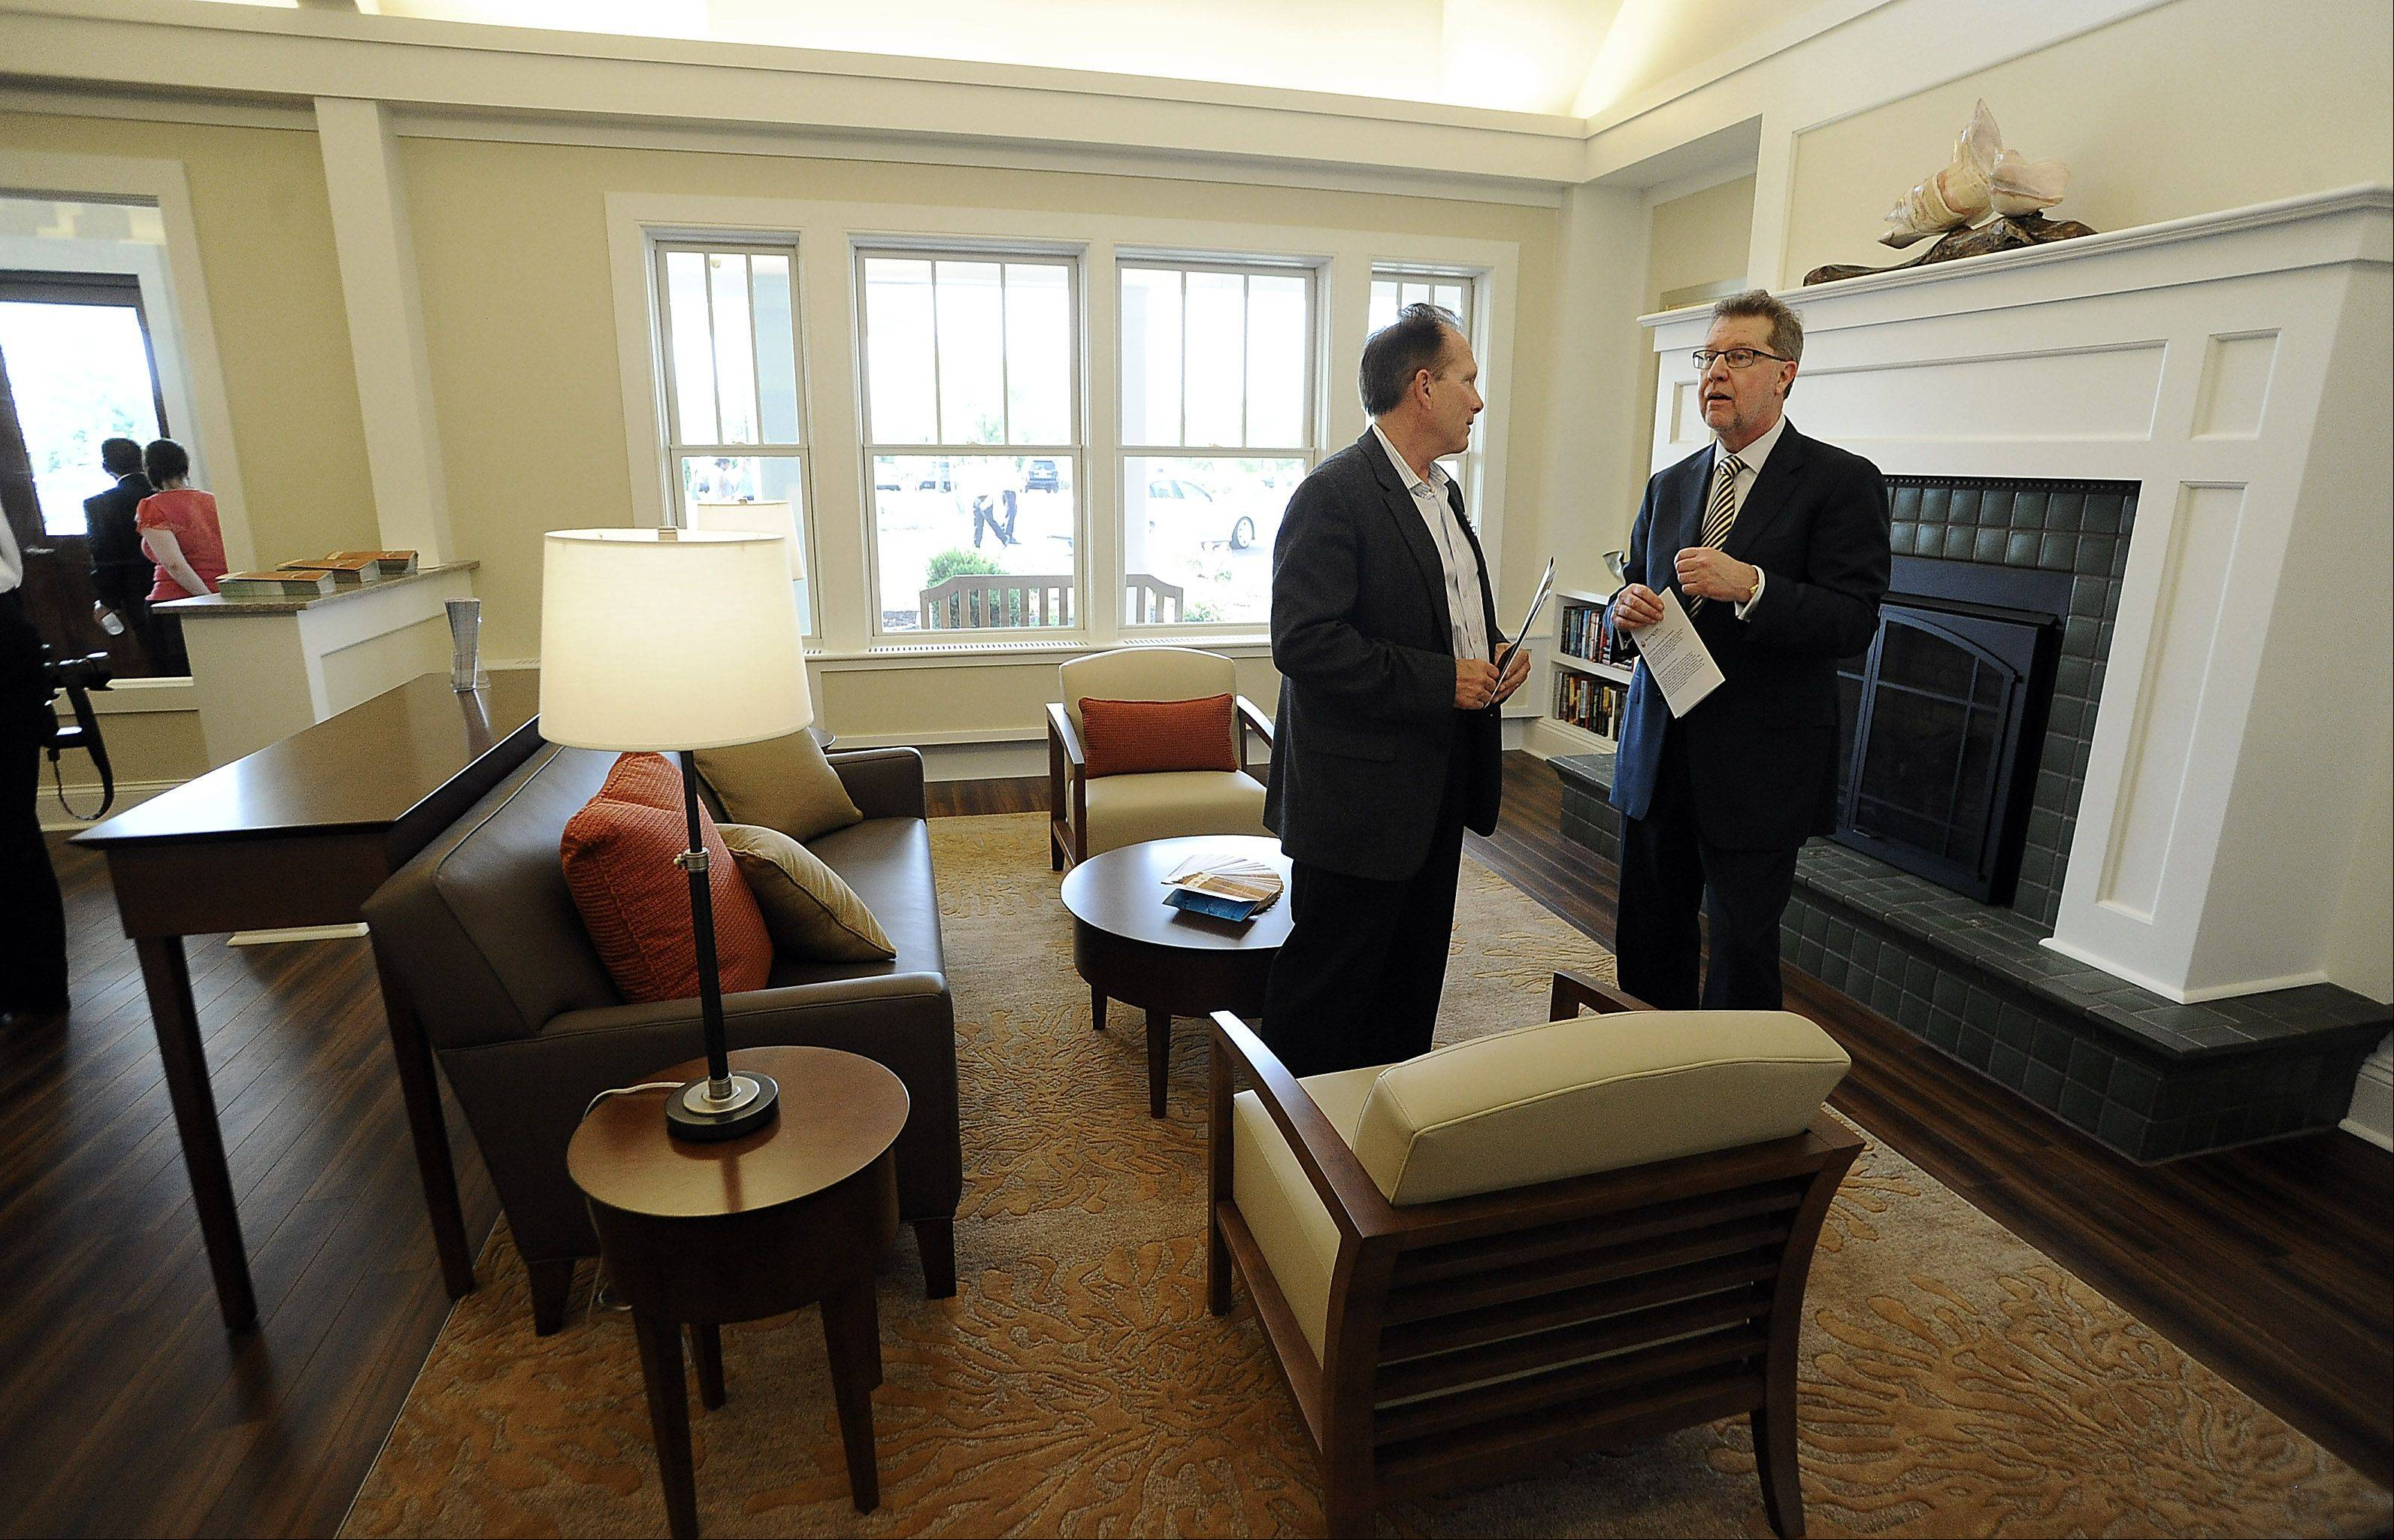 Mark Frey, president and CEO of Alexian Health System, right, and John Werrnach, president and CEO of Alexian medical center talk at the Alexian Brothers Hospice Residence grand opening in Elk Grove on Friday.